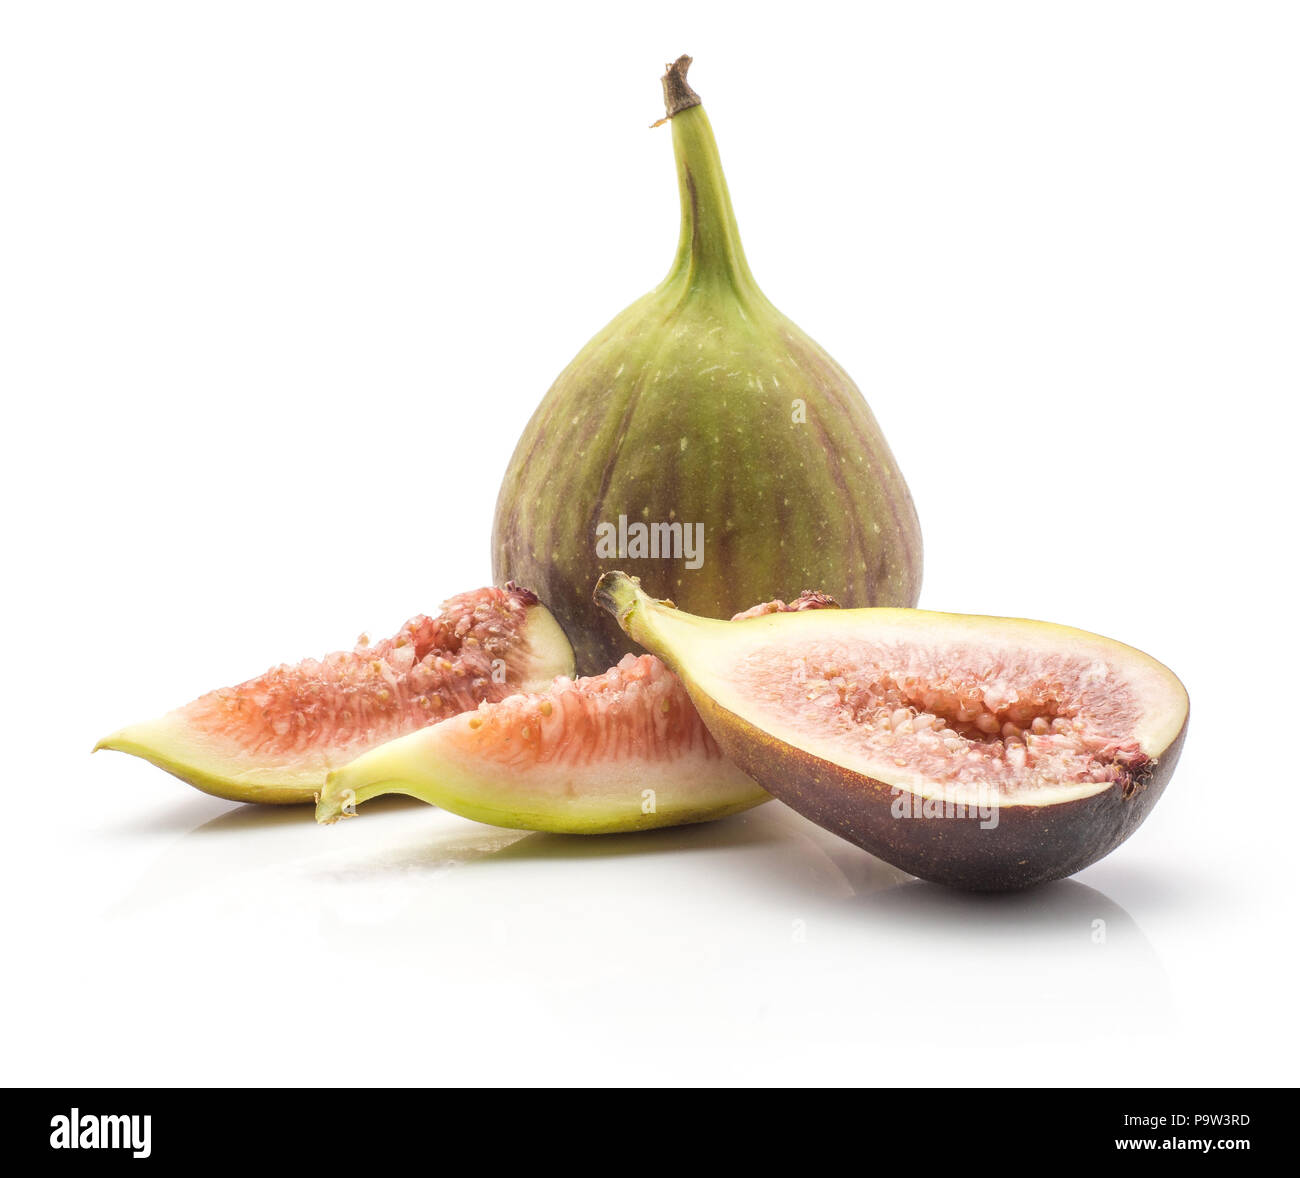 Sliced Figs One Whole Two Slices One Section Half Isolated